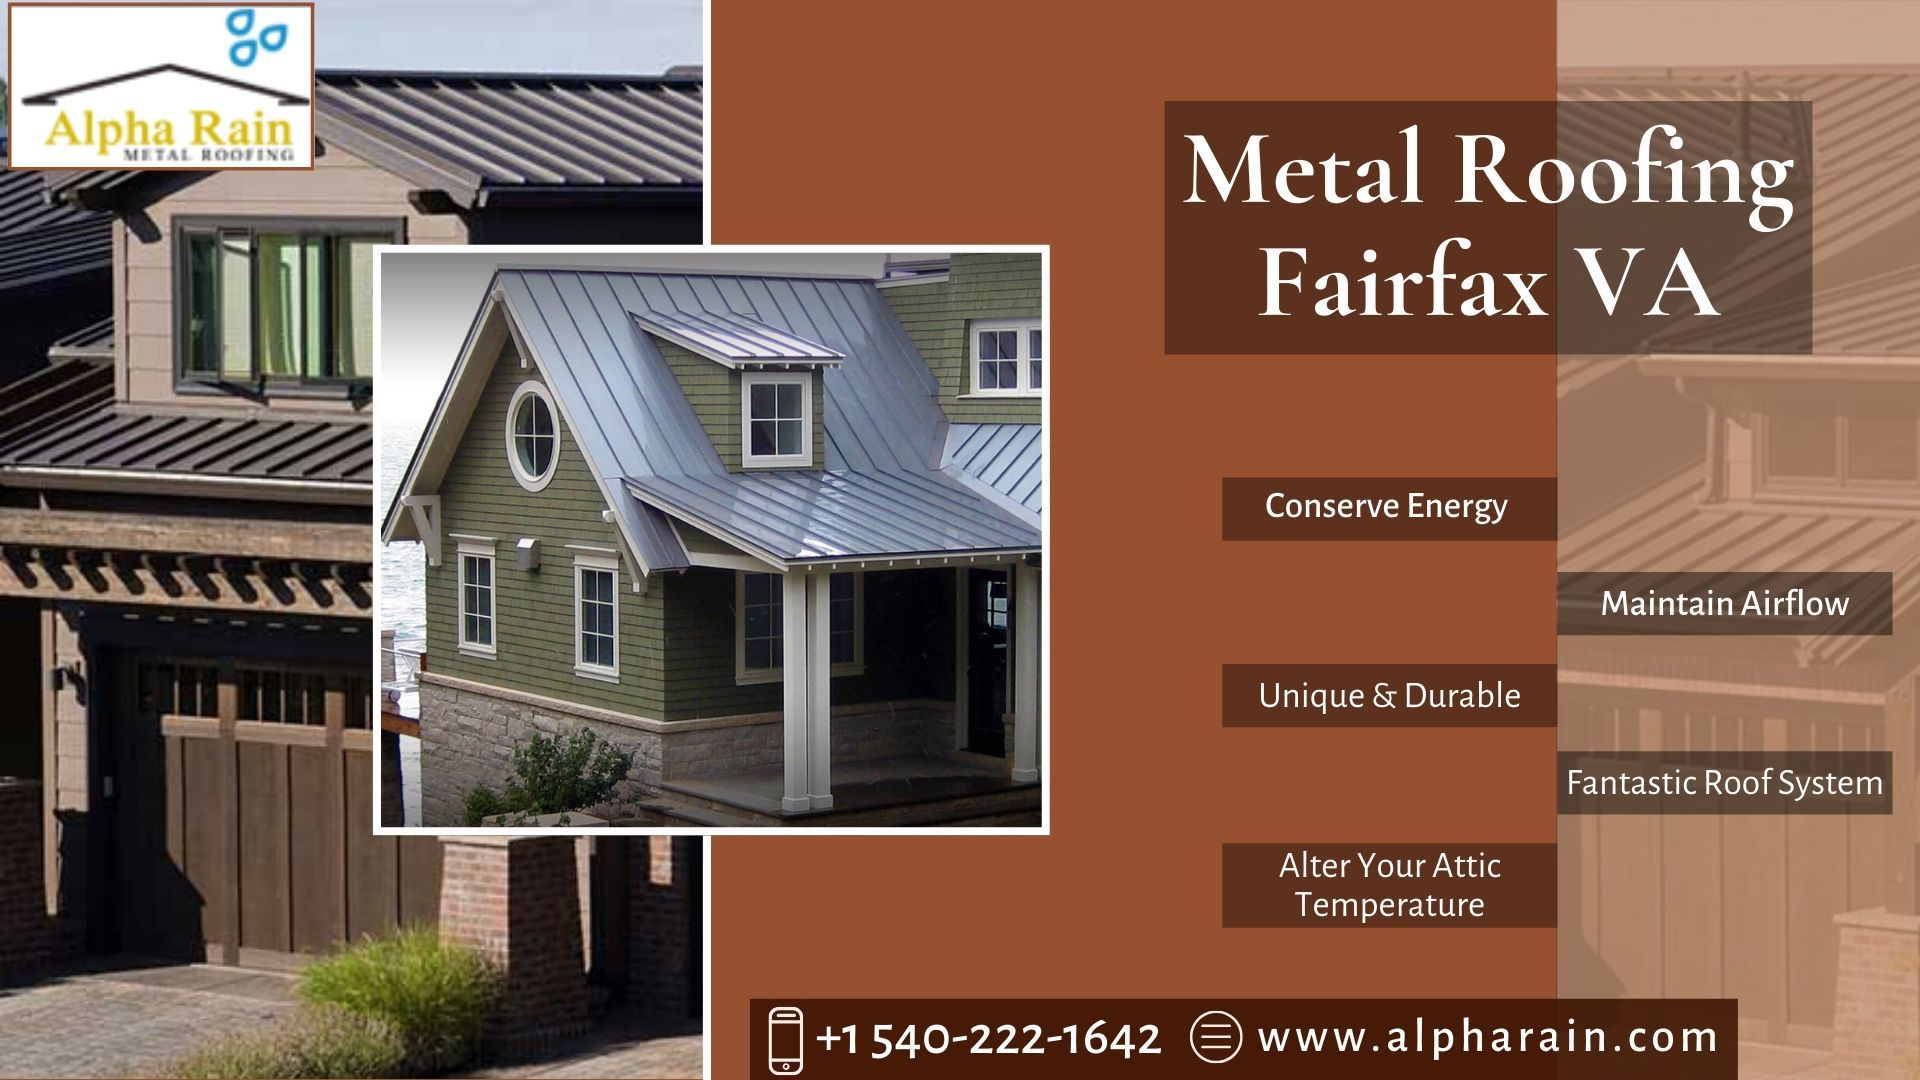 Under Metal Roof Ventilation In 2020 Roofing Metal Roof Fairfax